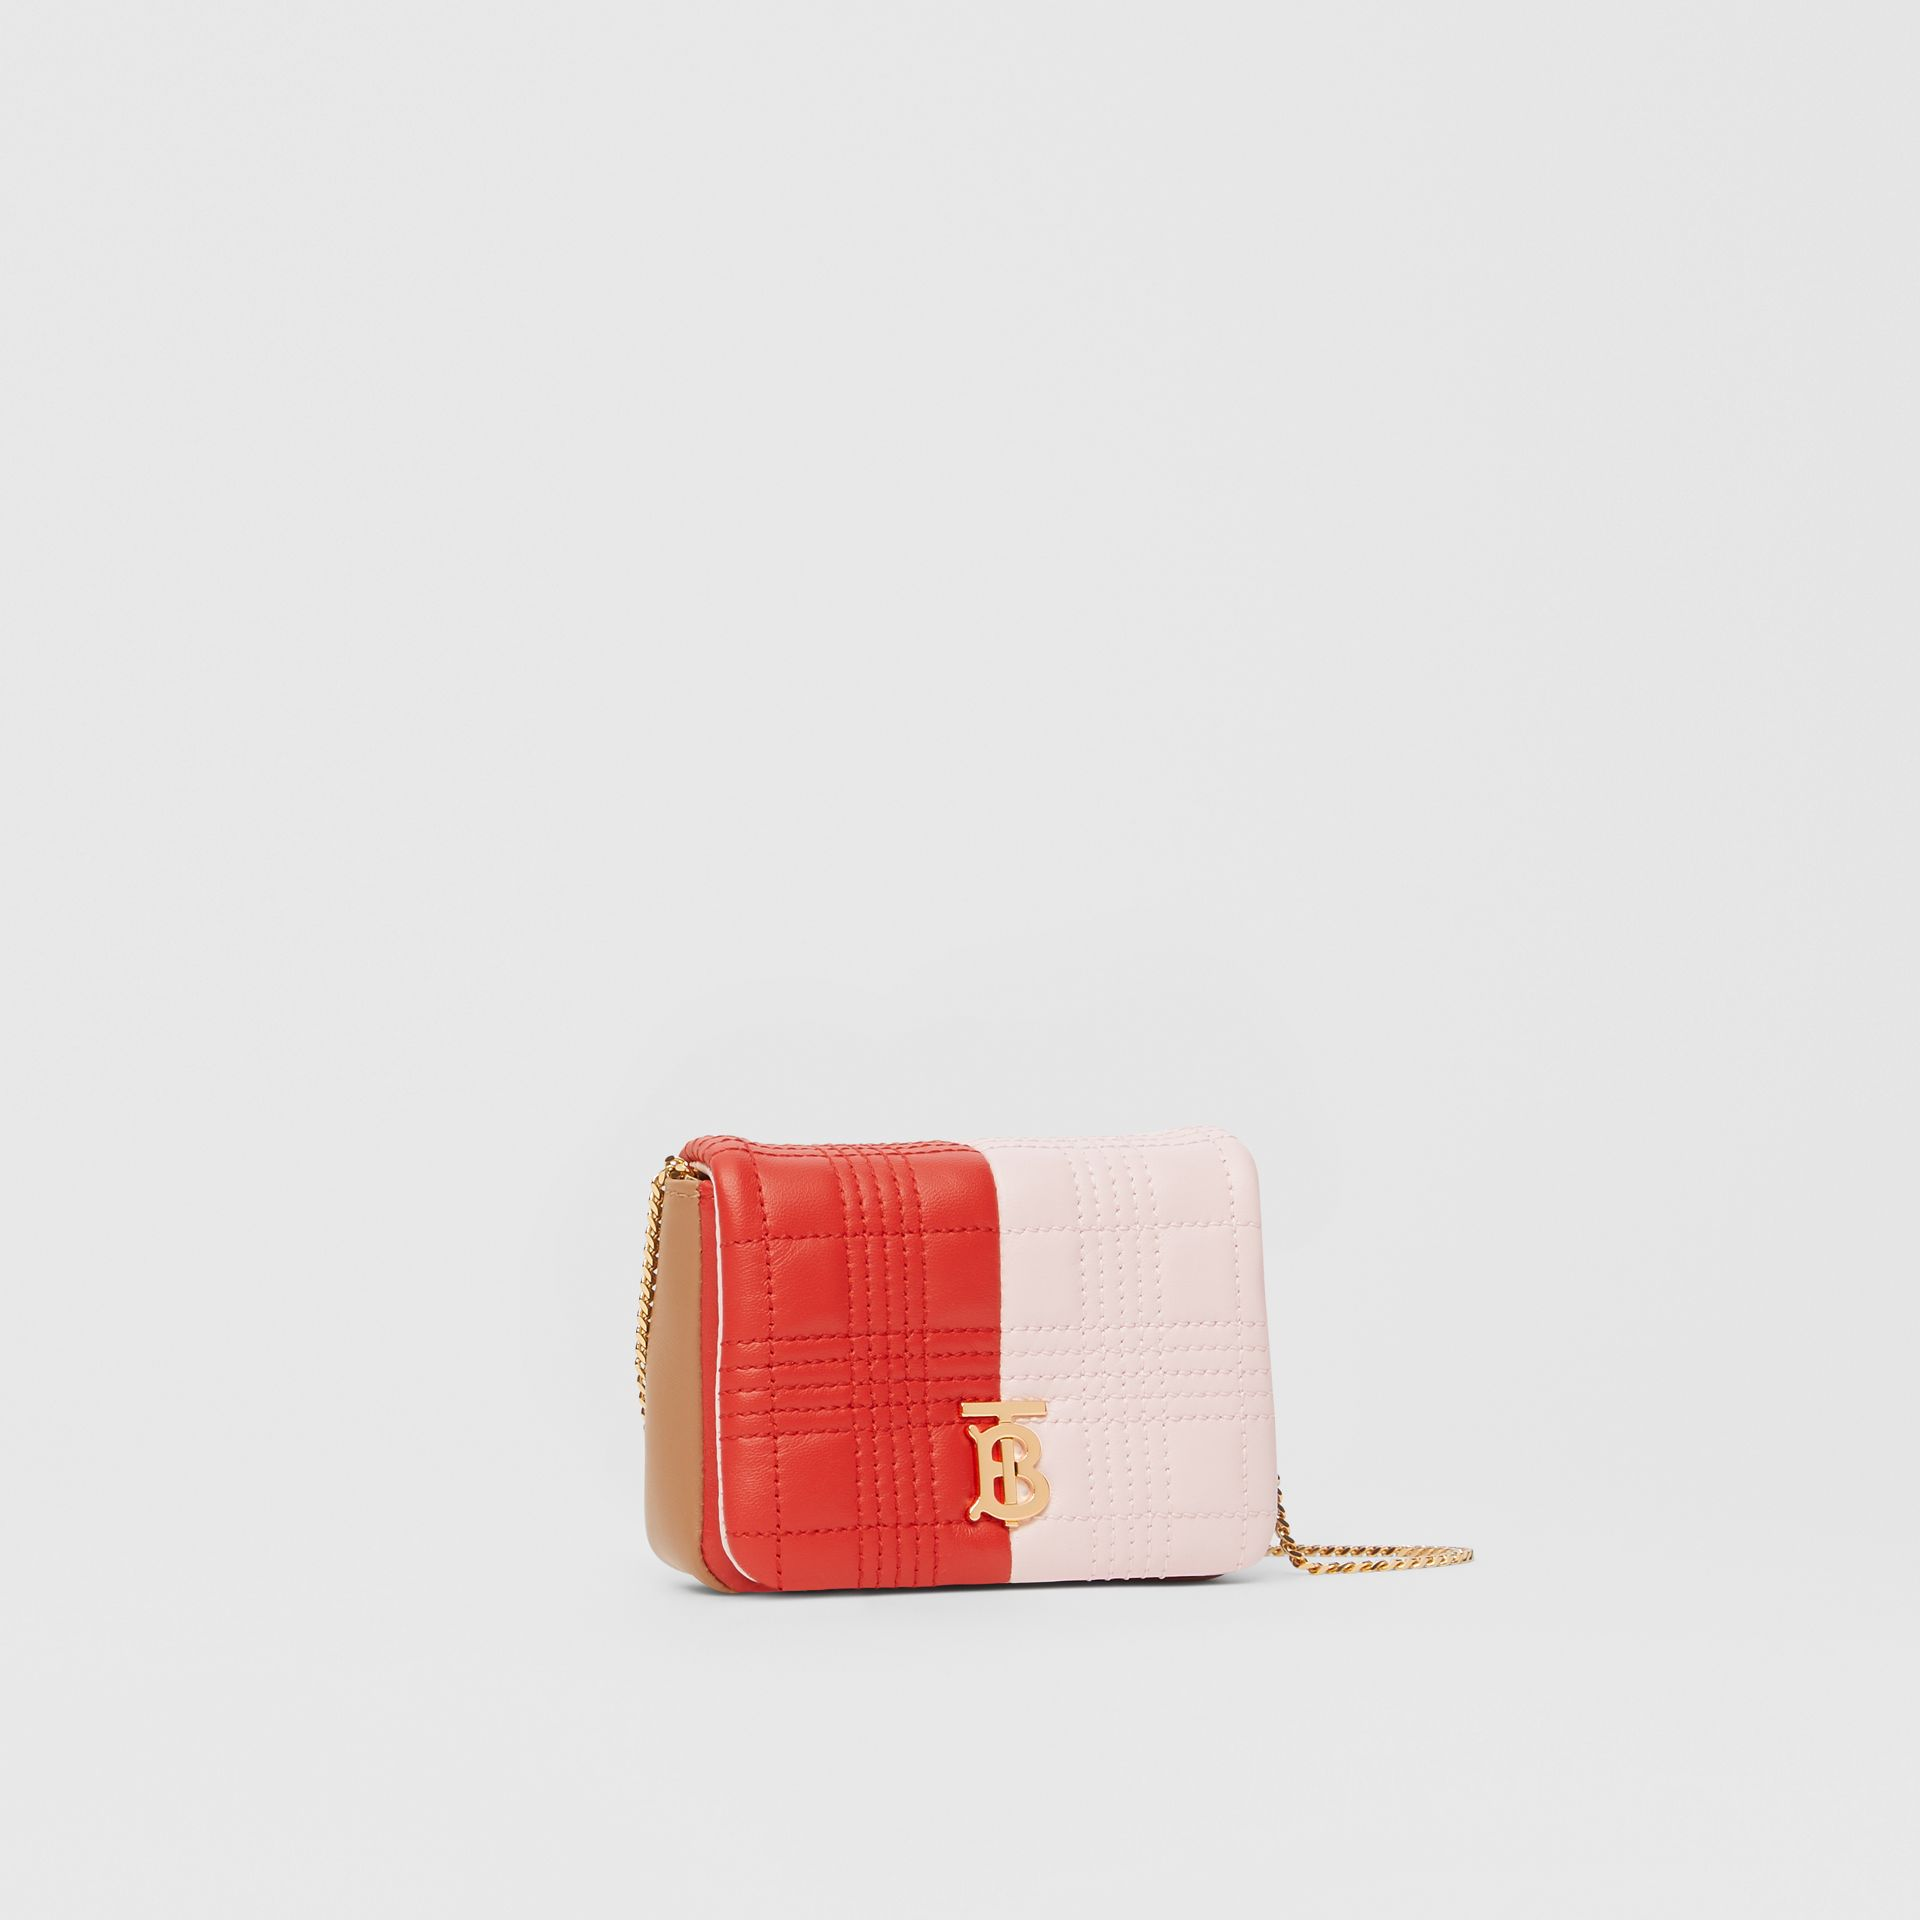 Micro Quilted Tri-tone Lambskin Lola Bag in Red/pink/camel - Women | Burberry - gallery image 6